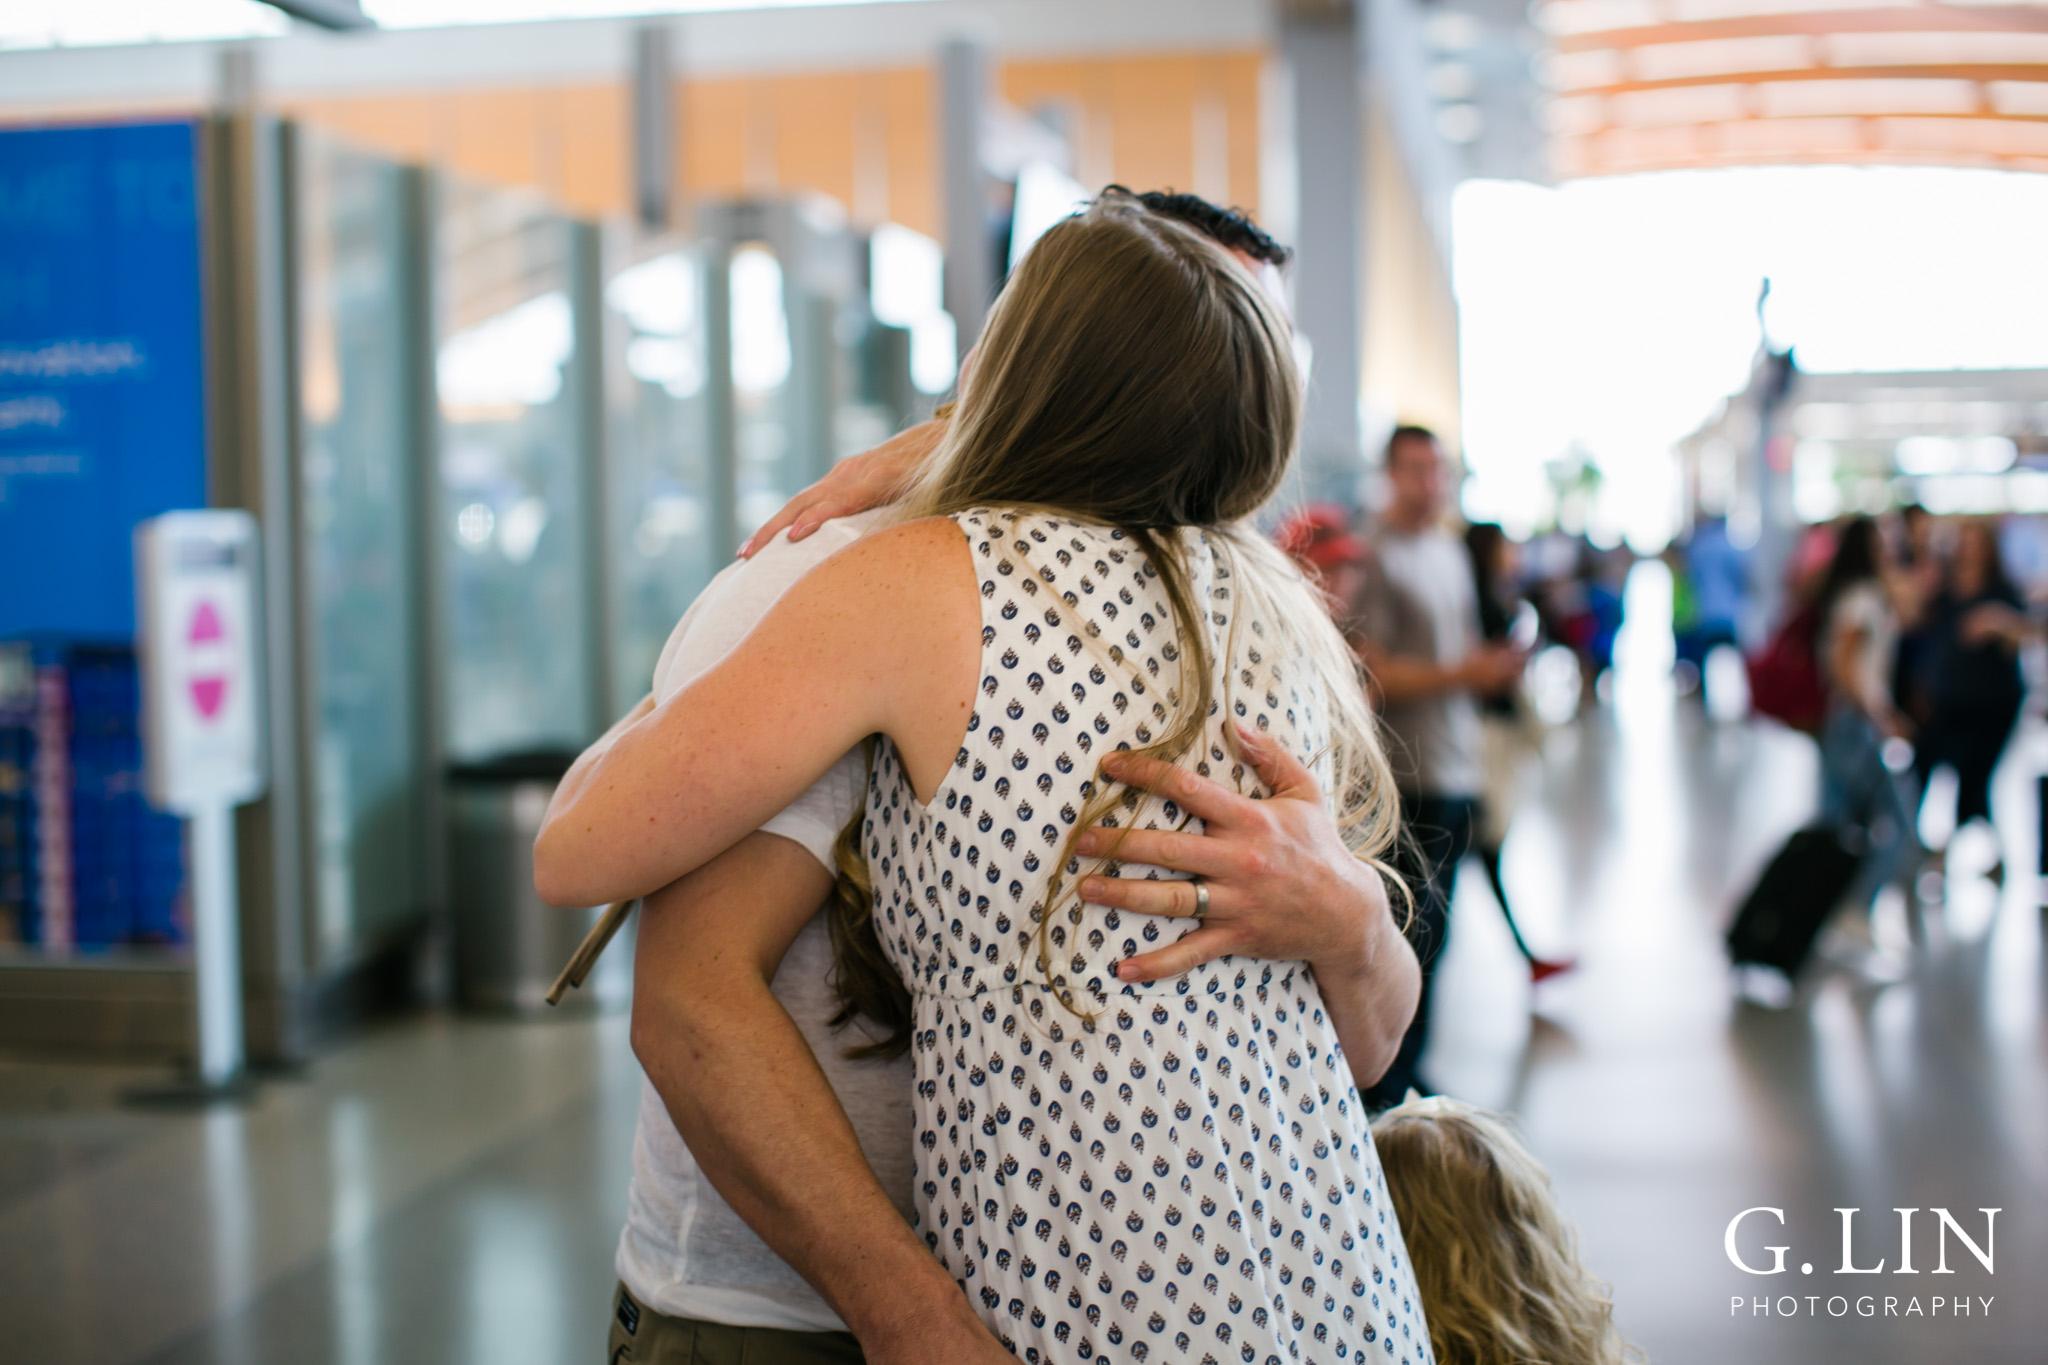 Raleigh Family Photographer | G. Lin Photography | dad hugging and greeting his wife at airport